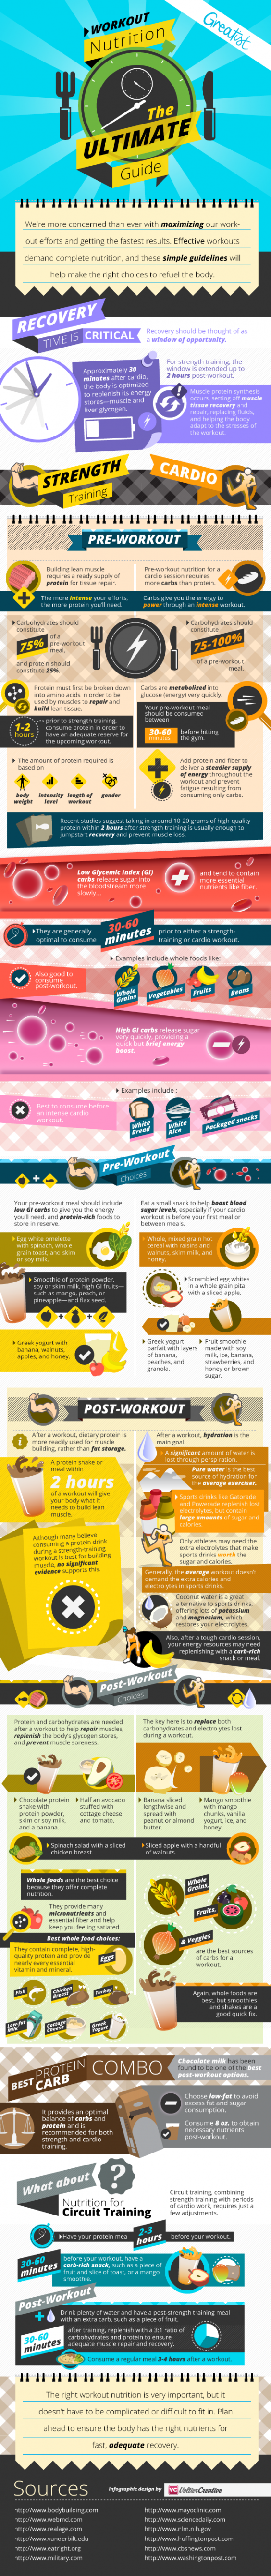 Your Complete Guide to Workout nutrition